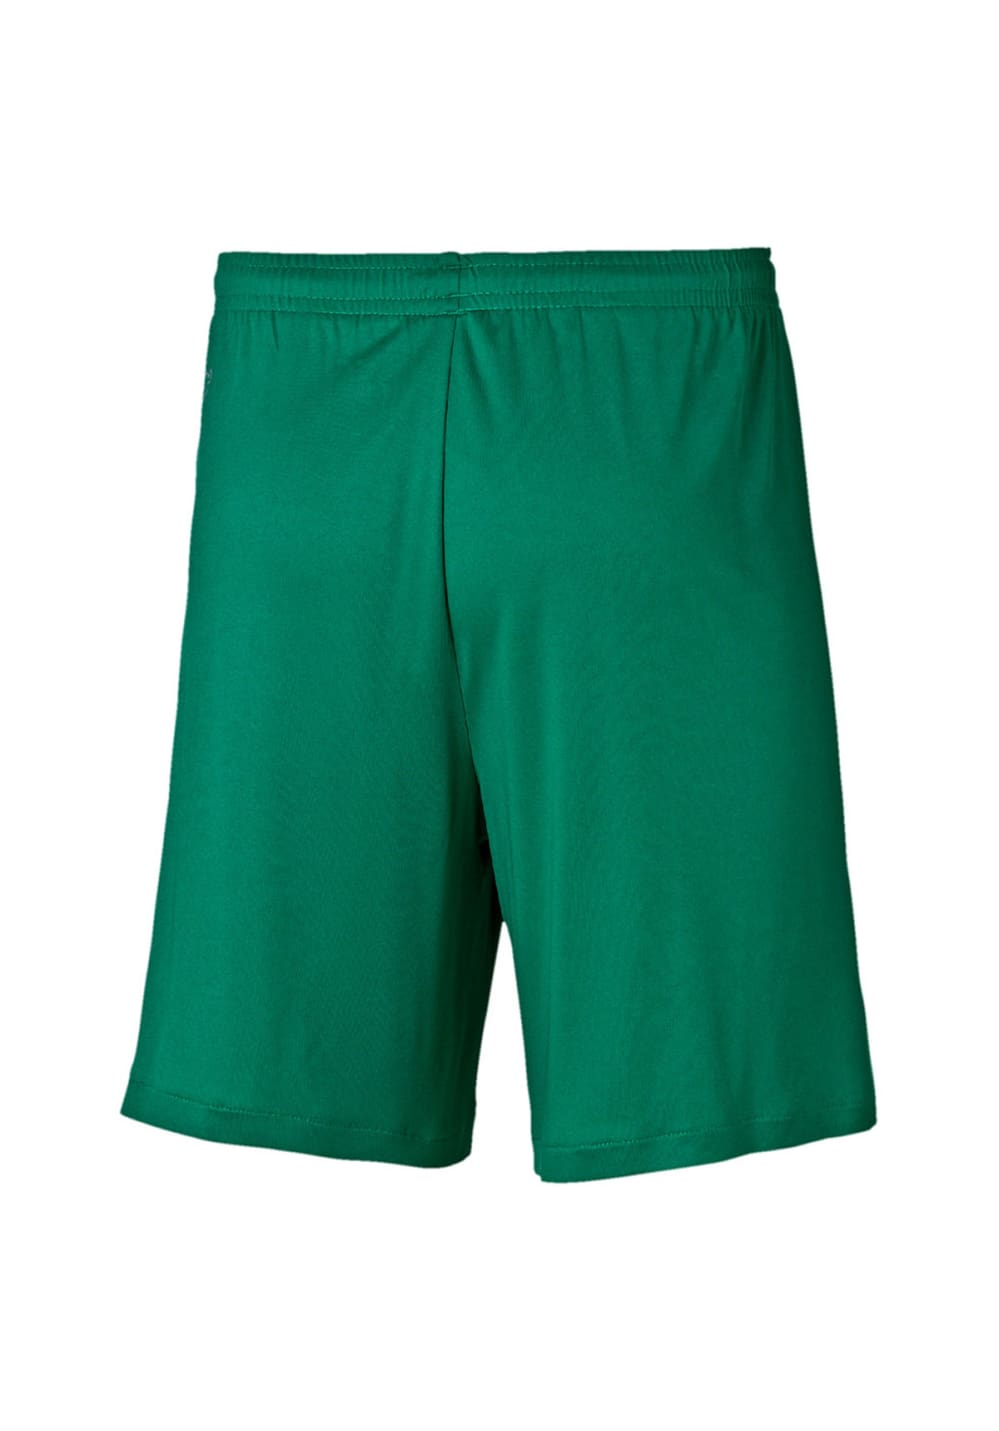 0c67ed65363c Puma Velize Shorts W.out Inner Slip - Fitness trousers - Green